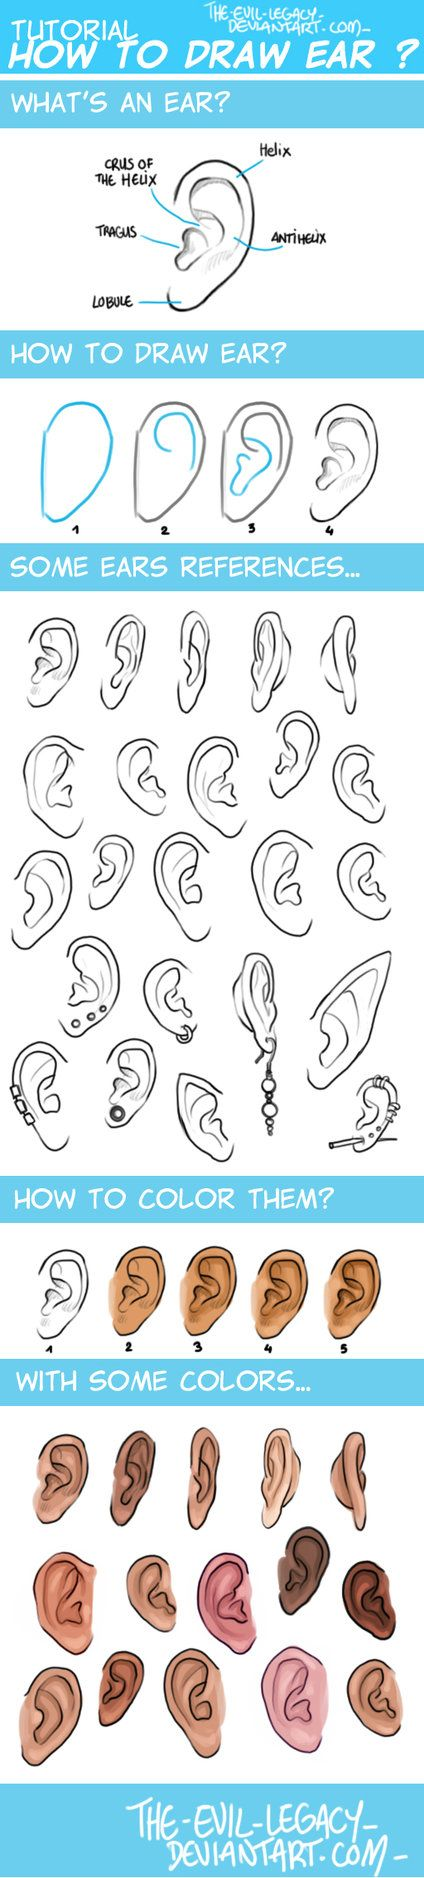 TUTO - How to draw ears? by the-evil-legacy on DeviantArt